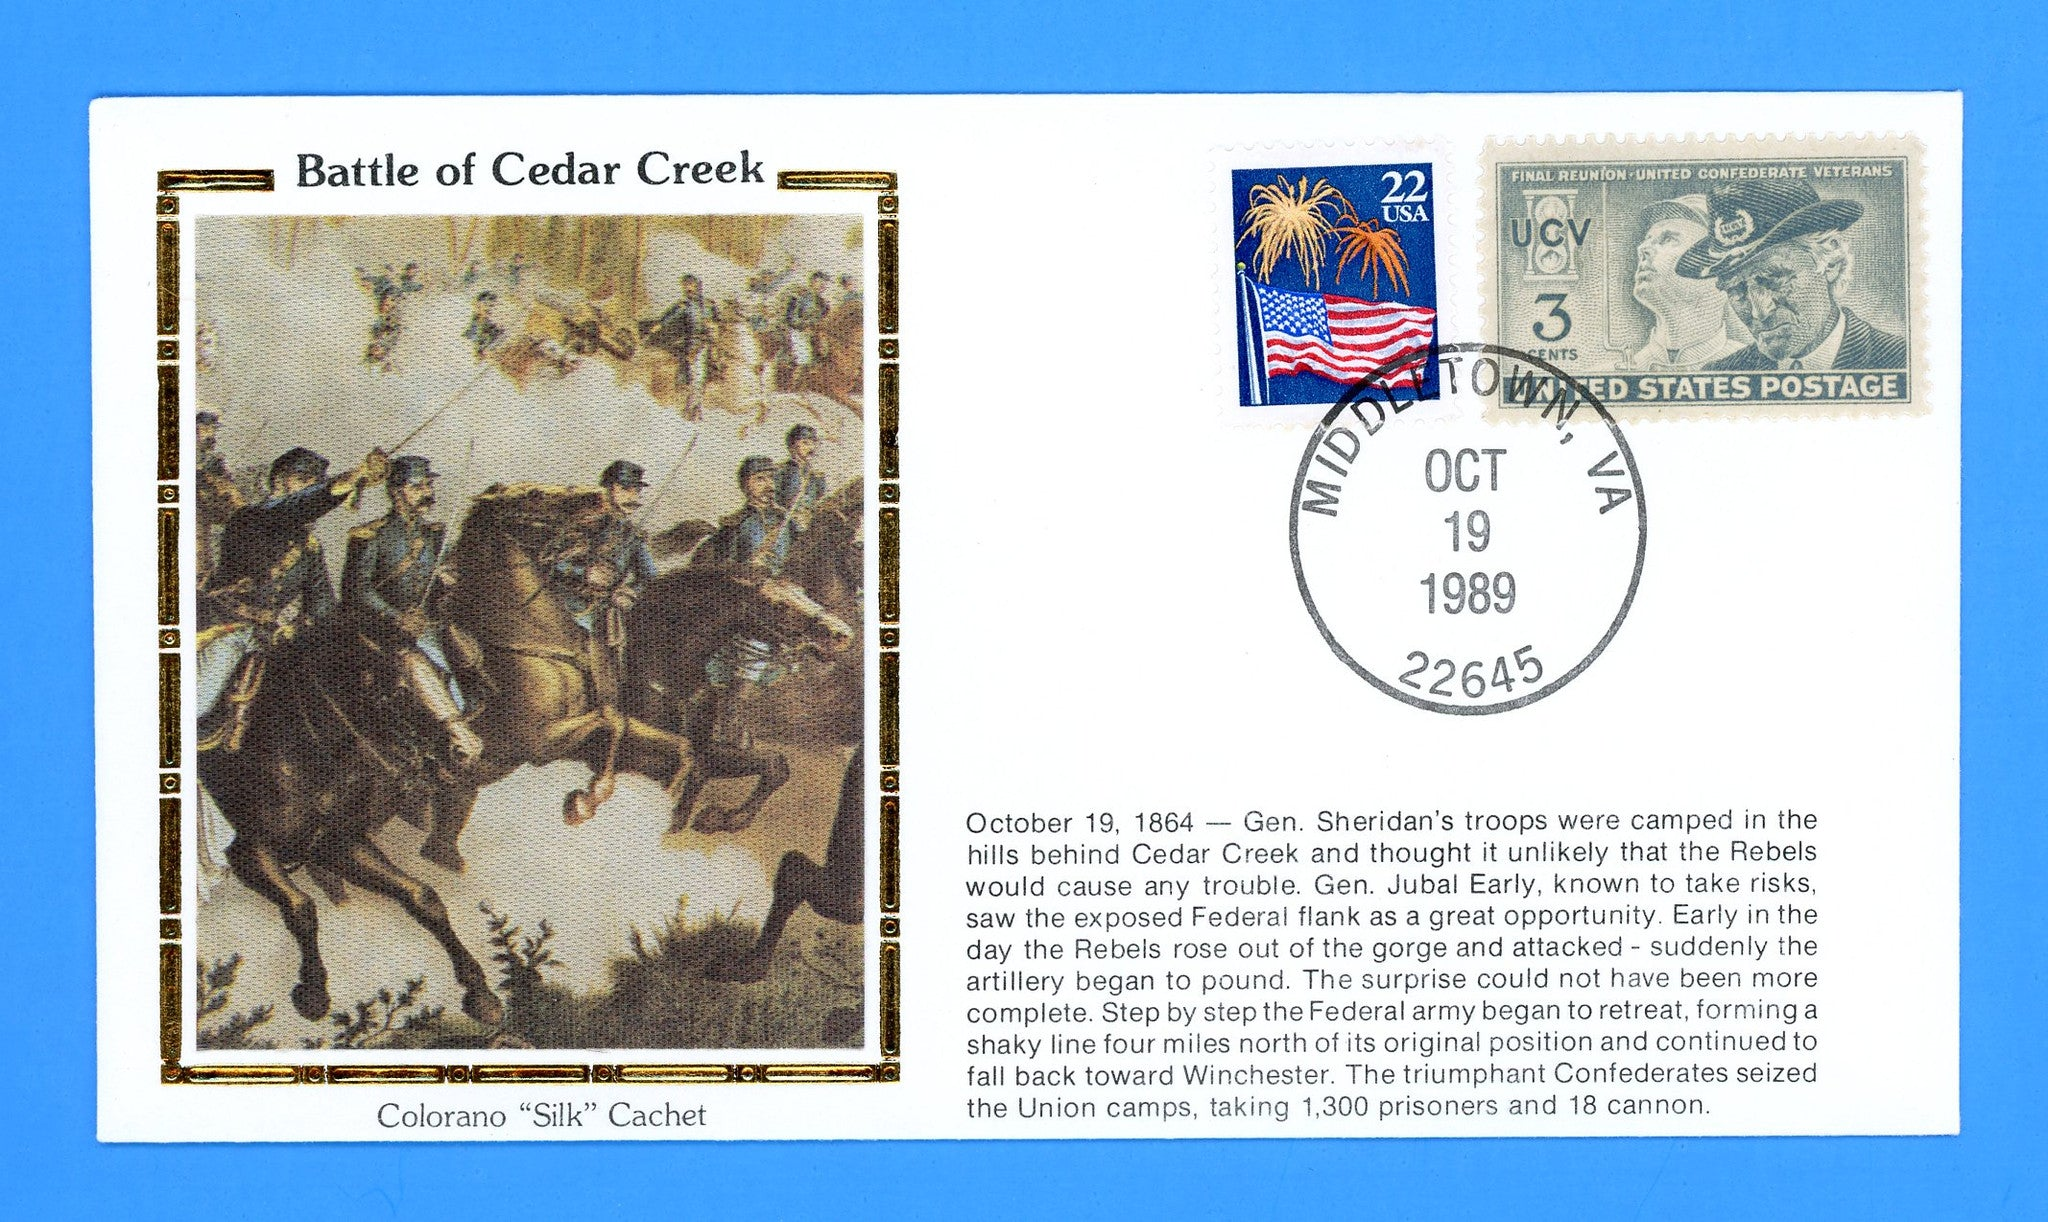 Civil War Battle of Cedar Creek Anniversary October 19, 1989 by Colorano